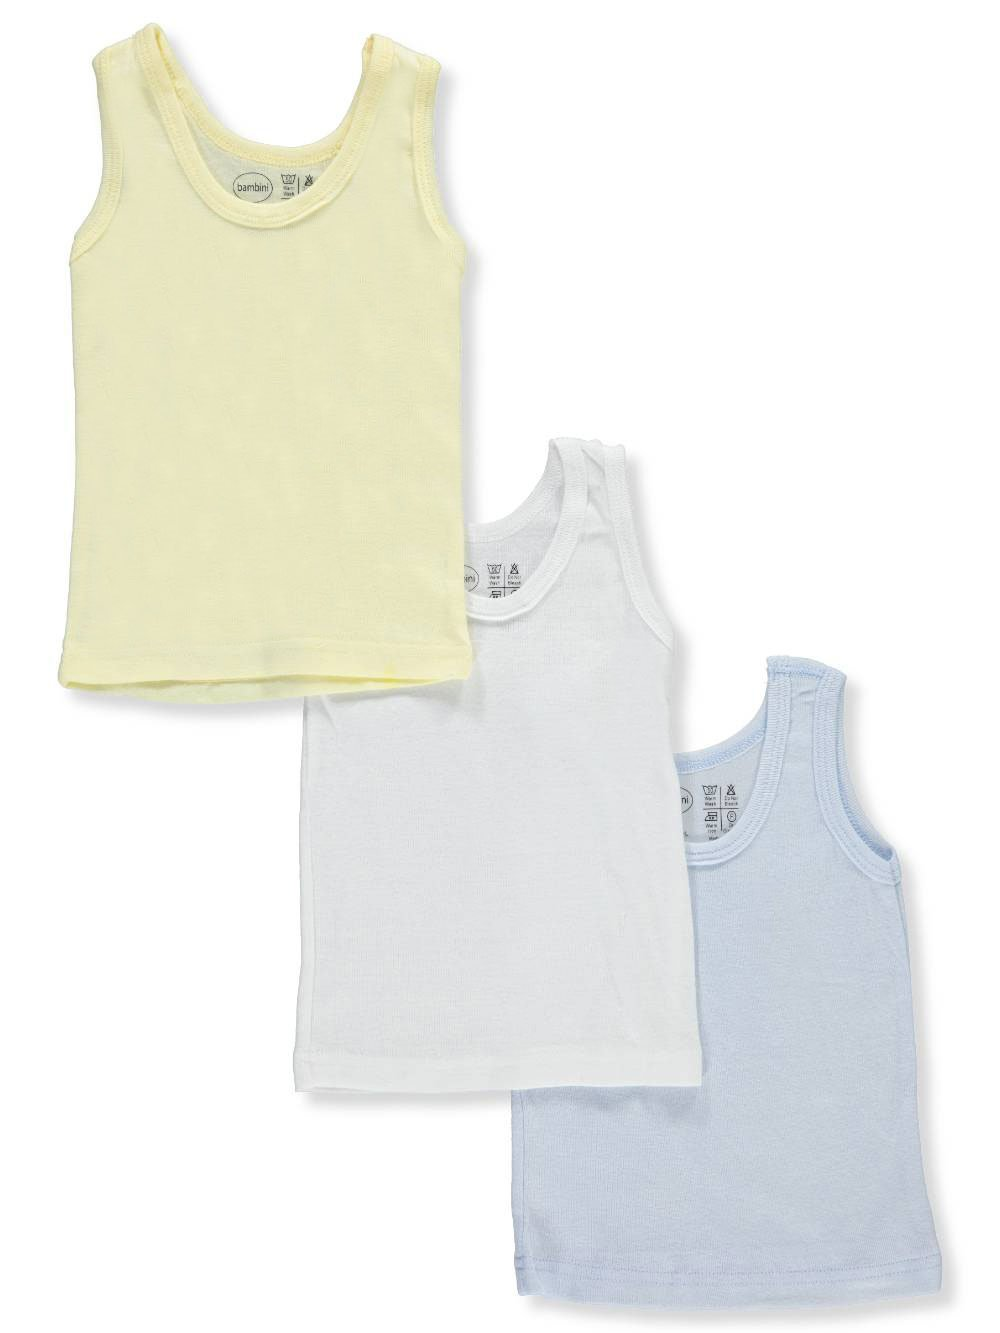 Bambini Baby Boys' 3-Pack Sleeveless T-Shirts